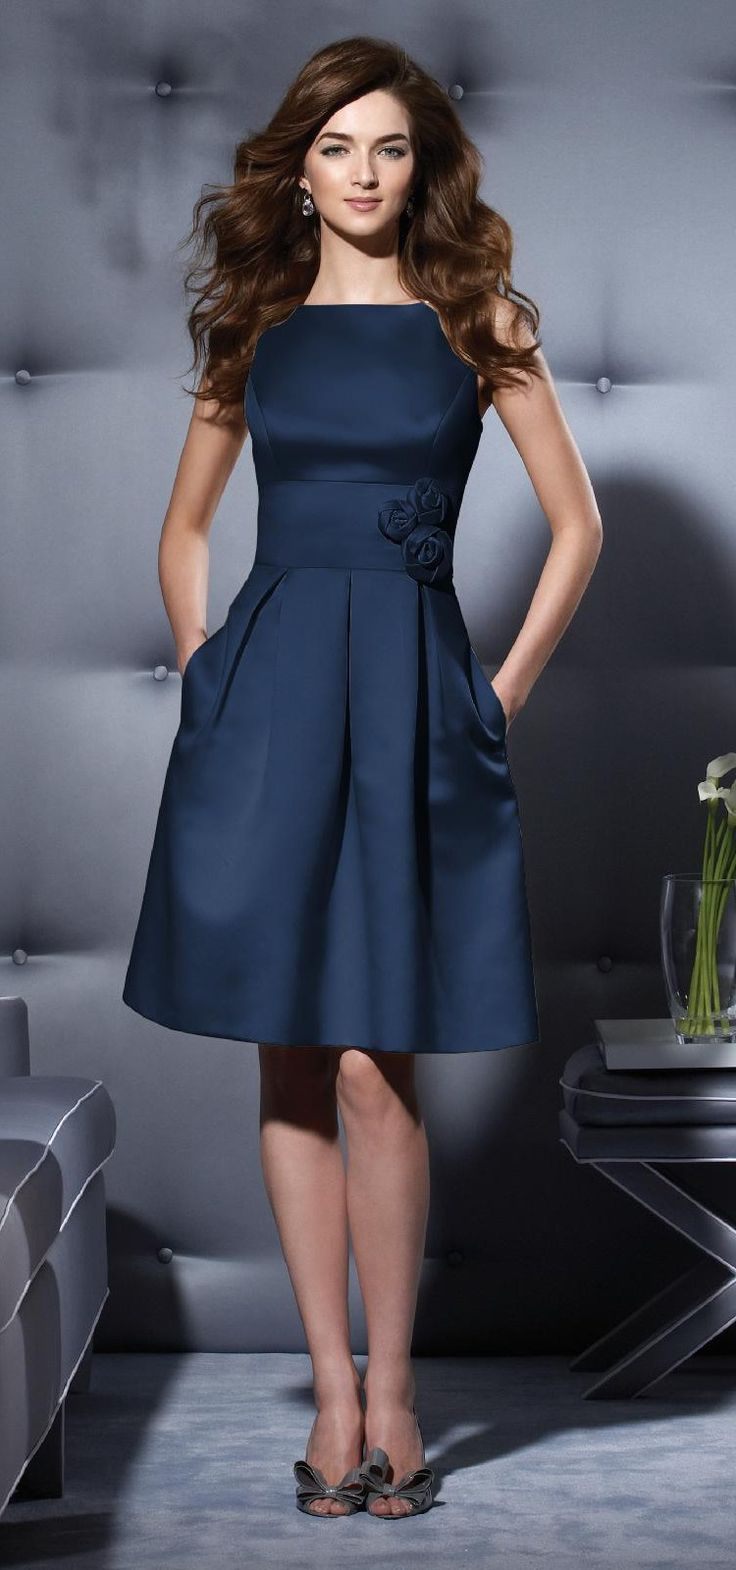 cute cocktail dress with pockets.  I love dresses with pockets!